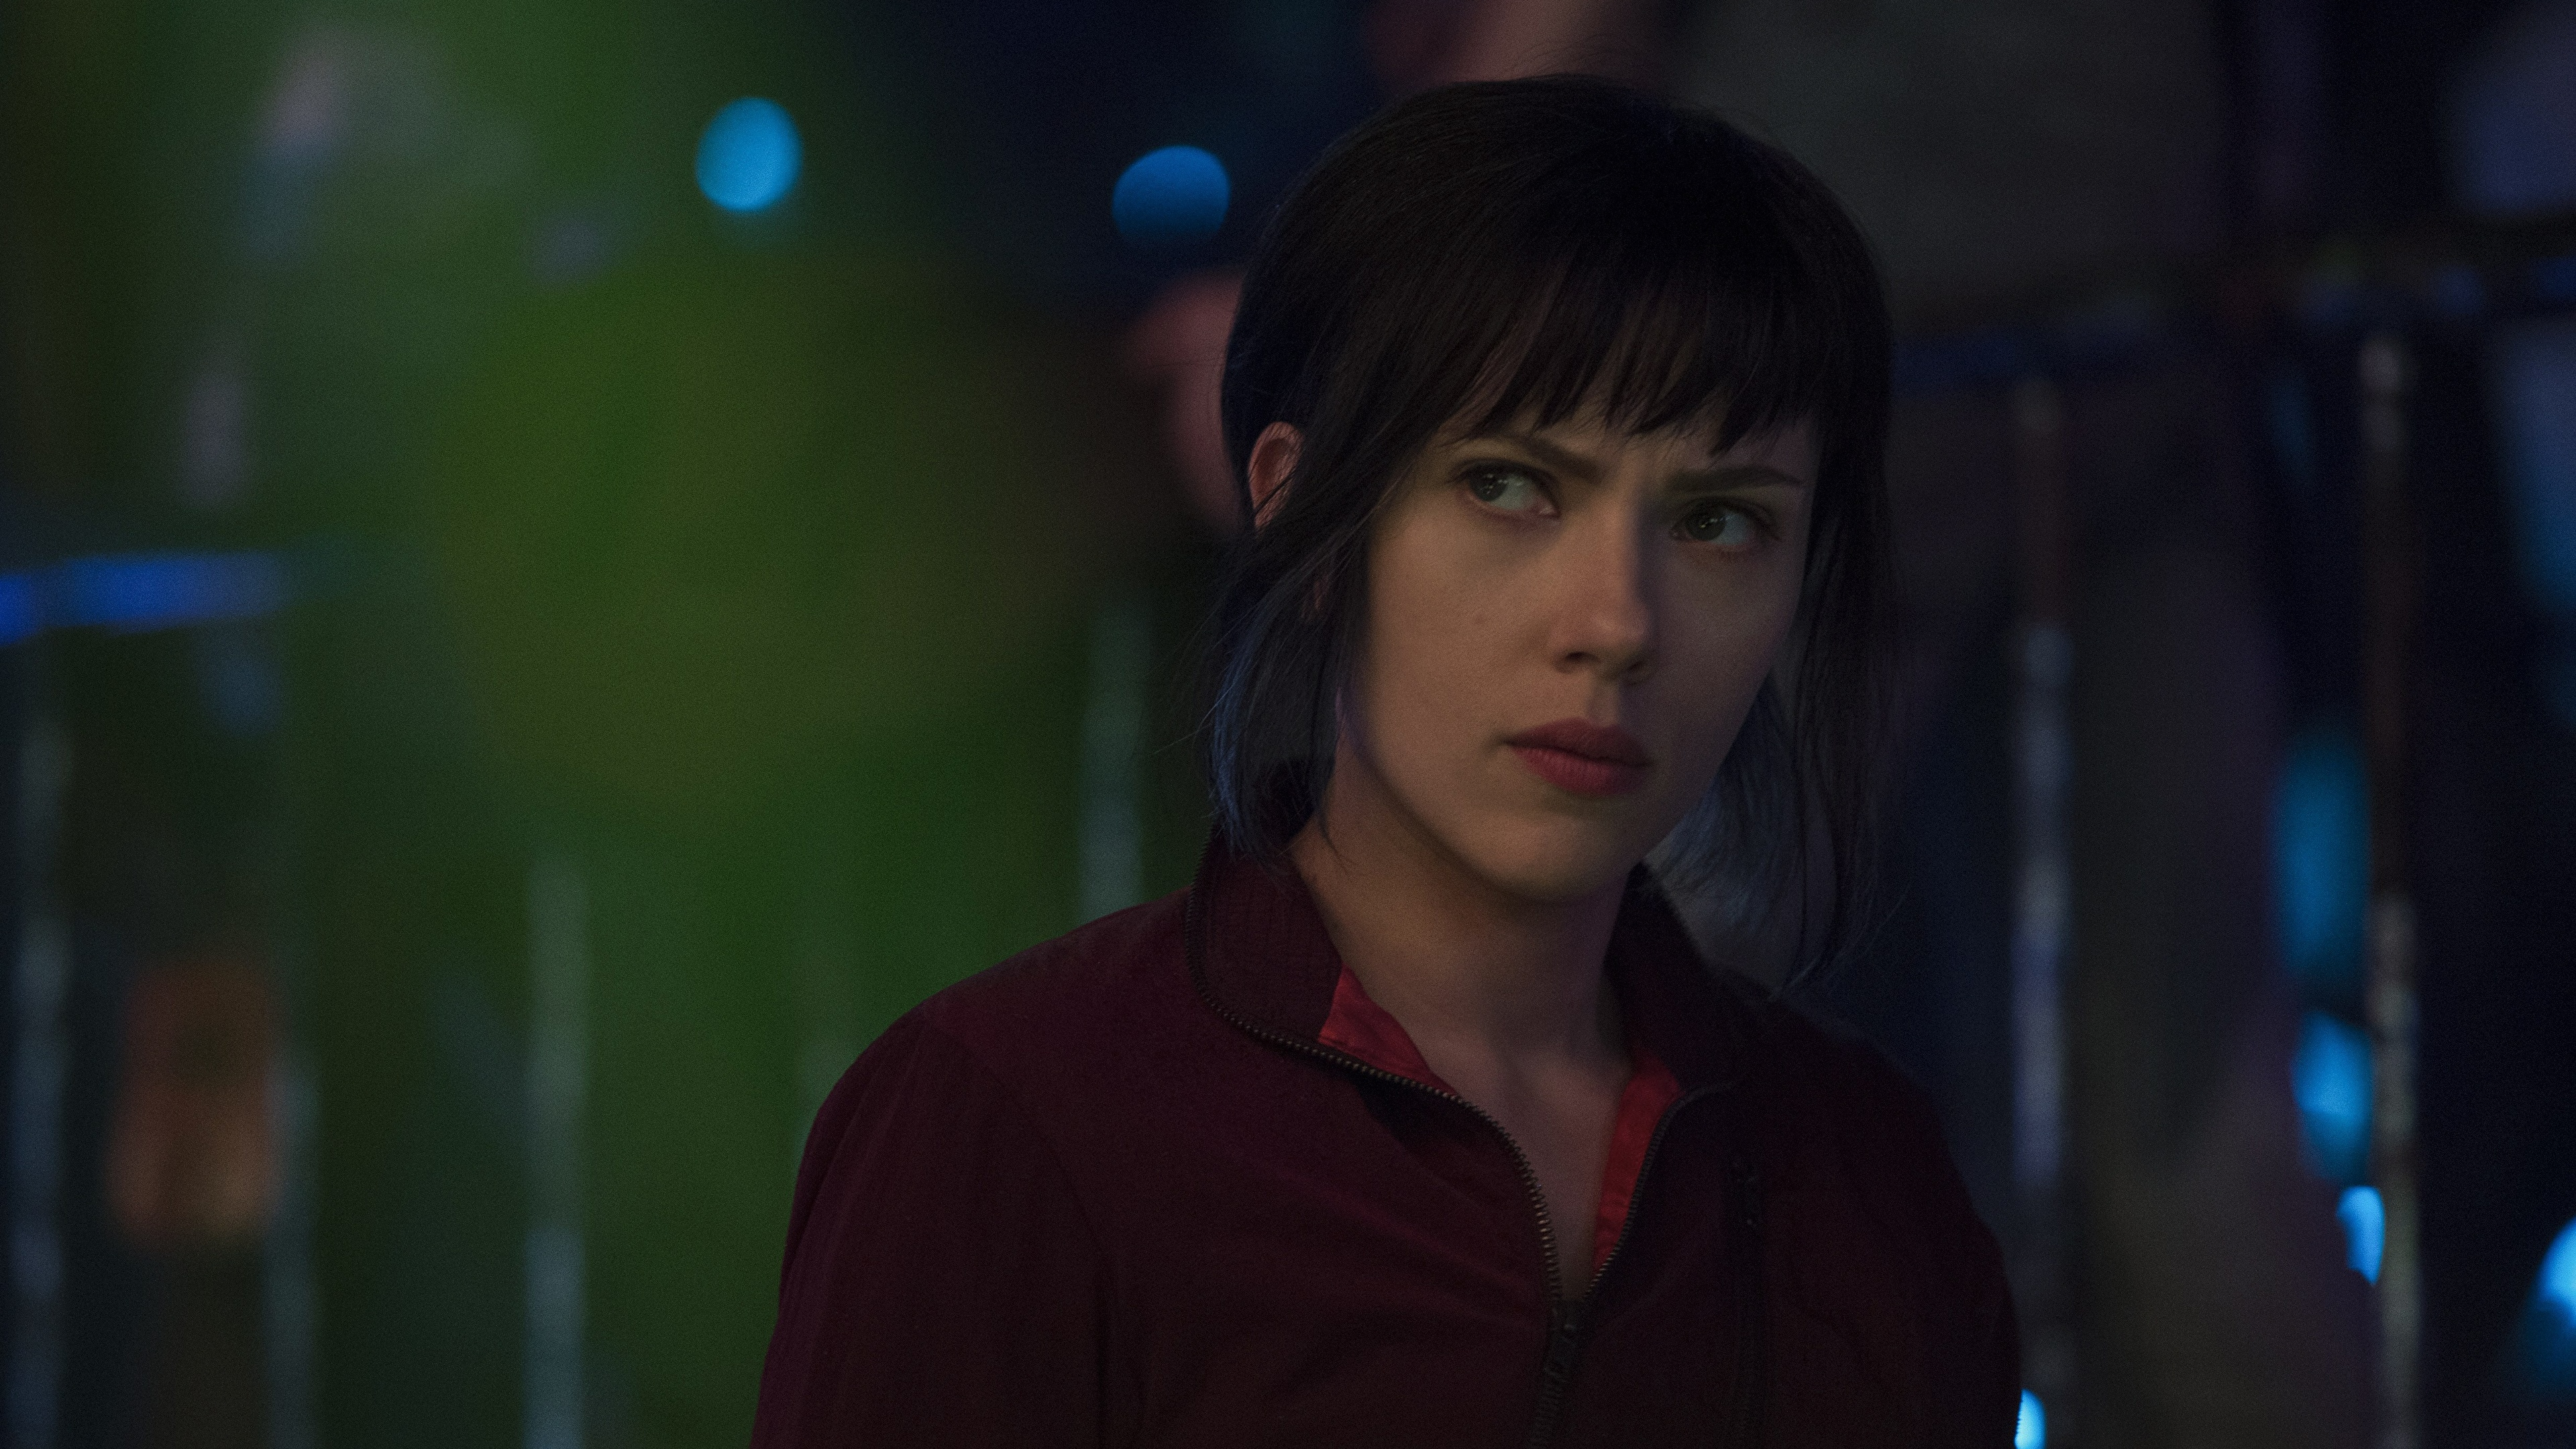 Image Scarlett Johansson Ghost In The Shell Young Woman 3840x2160